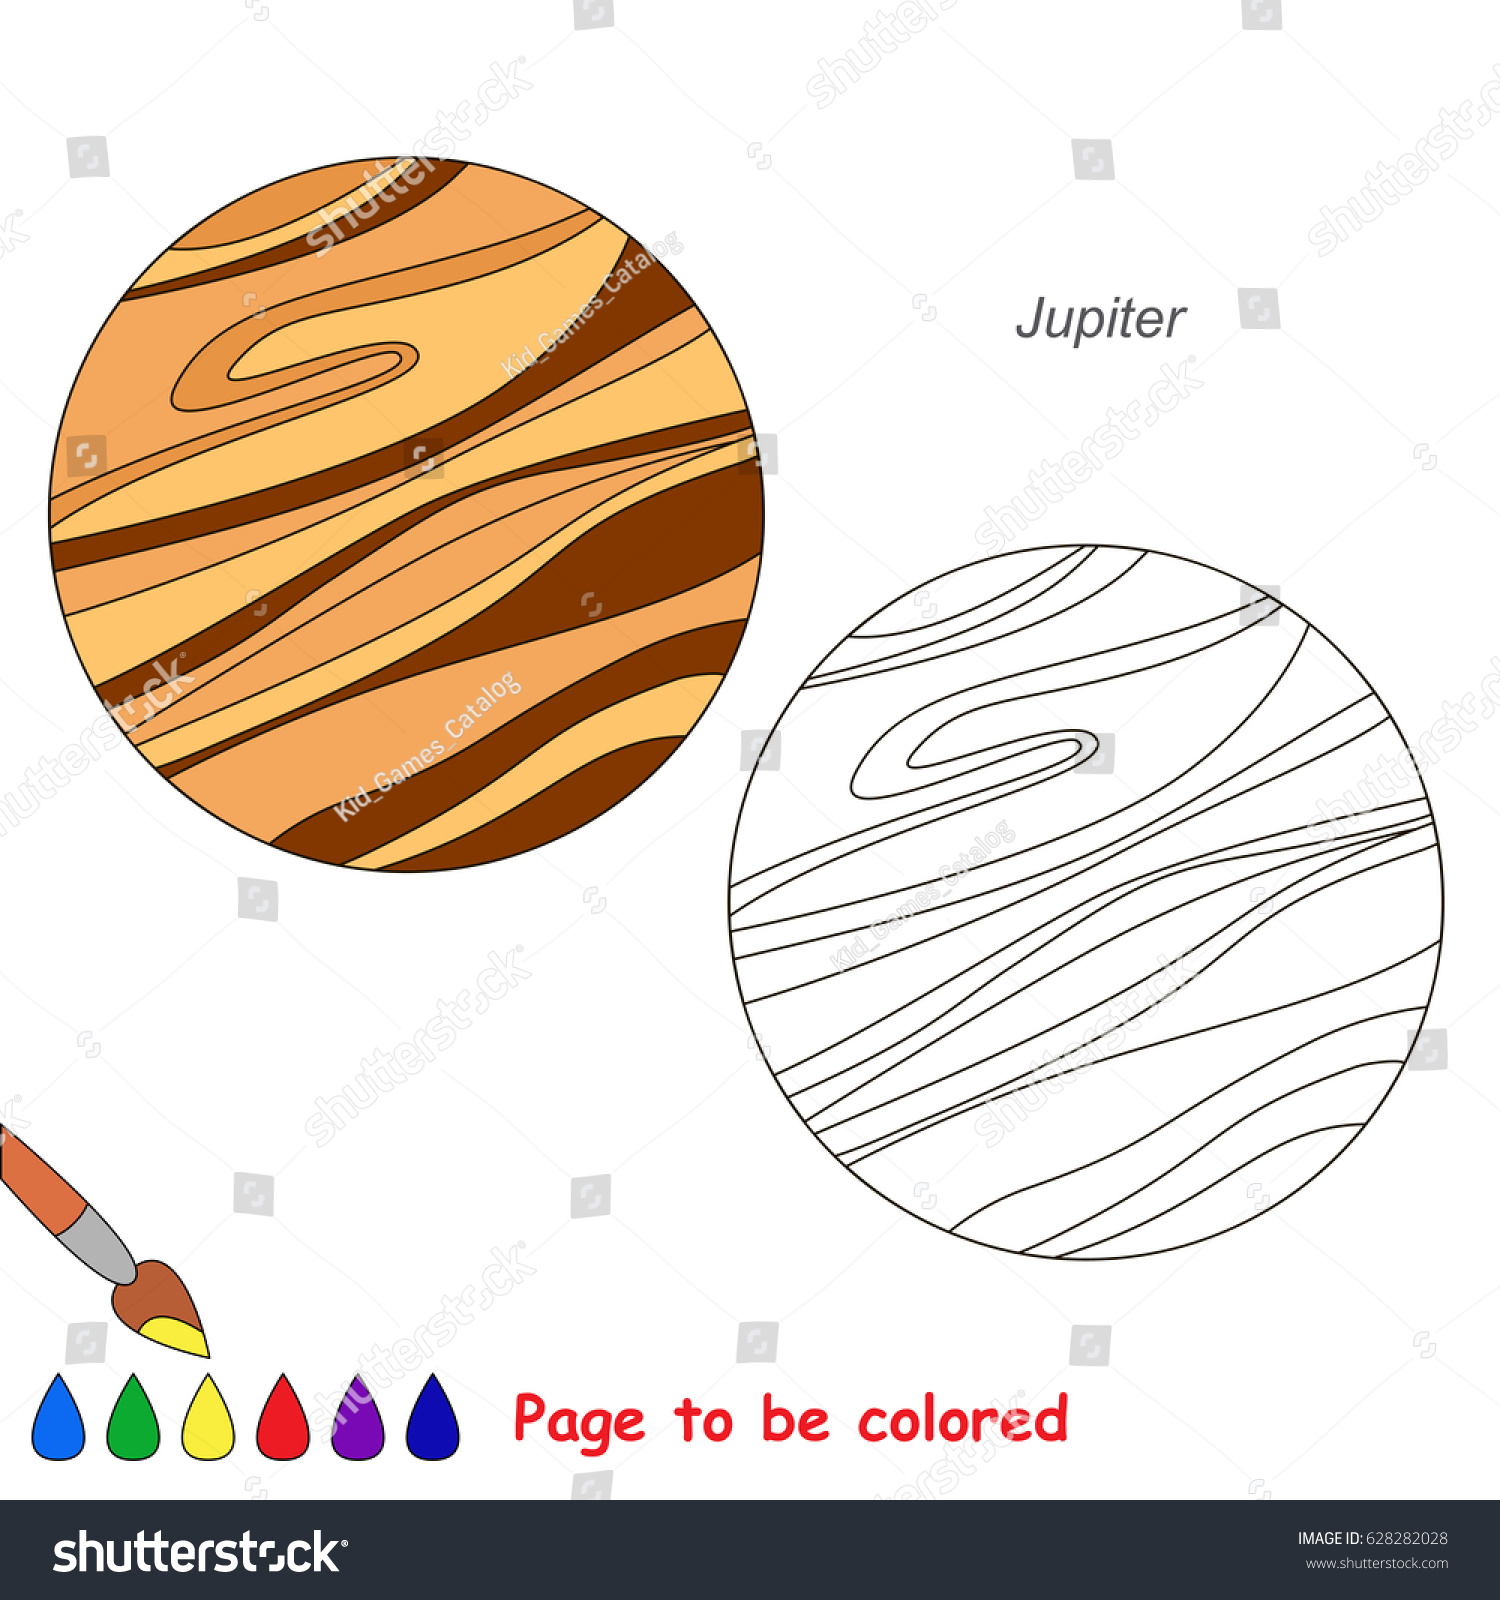 planet jupiter be colored coloring book stock vector 628282028